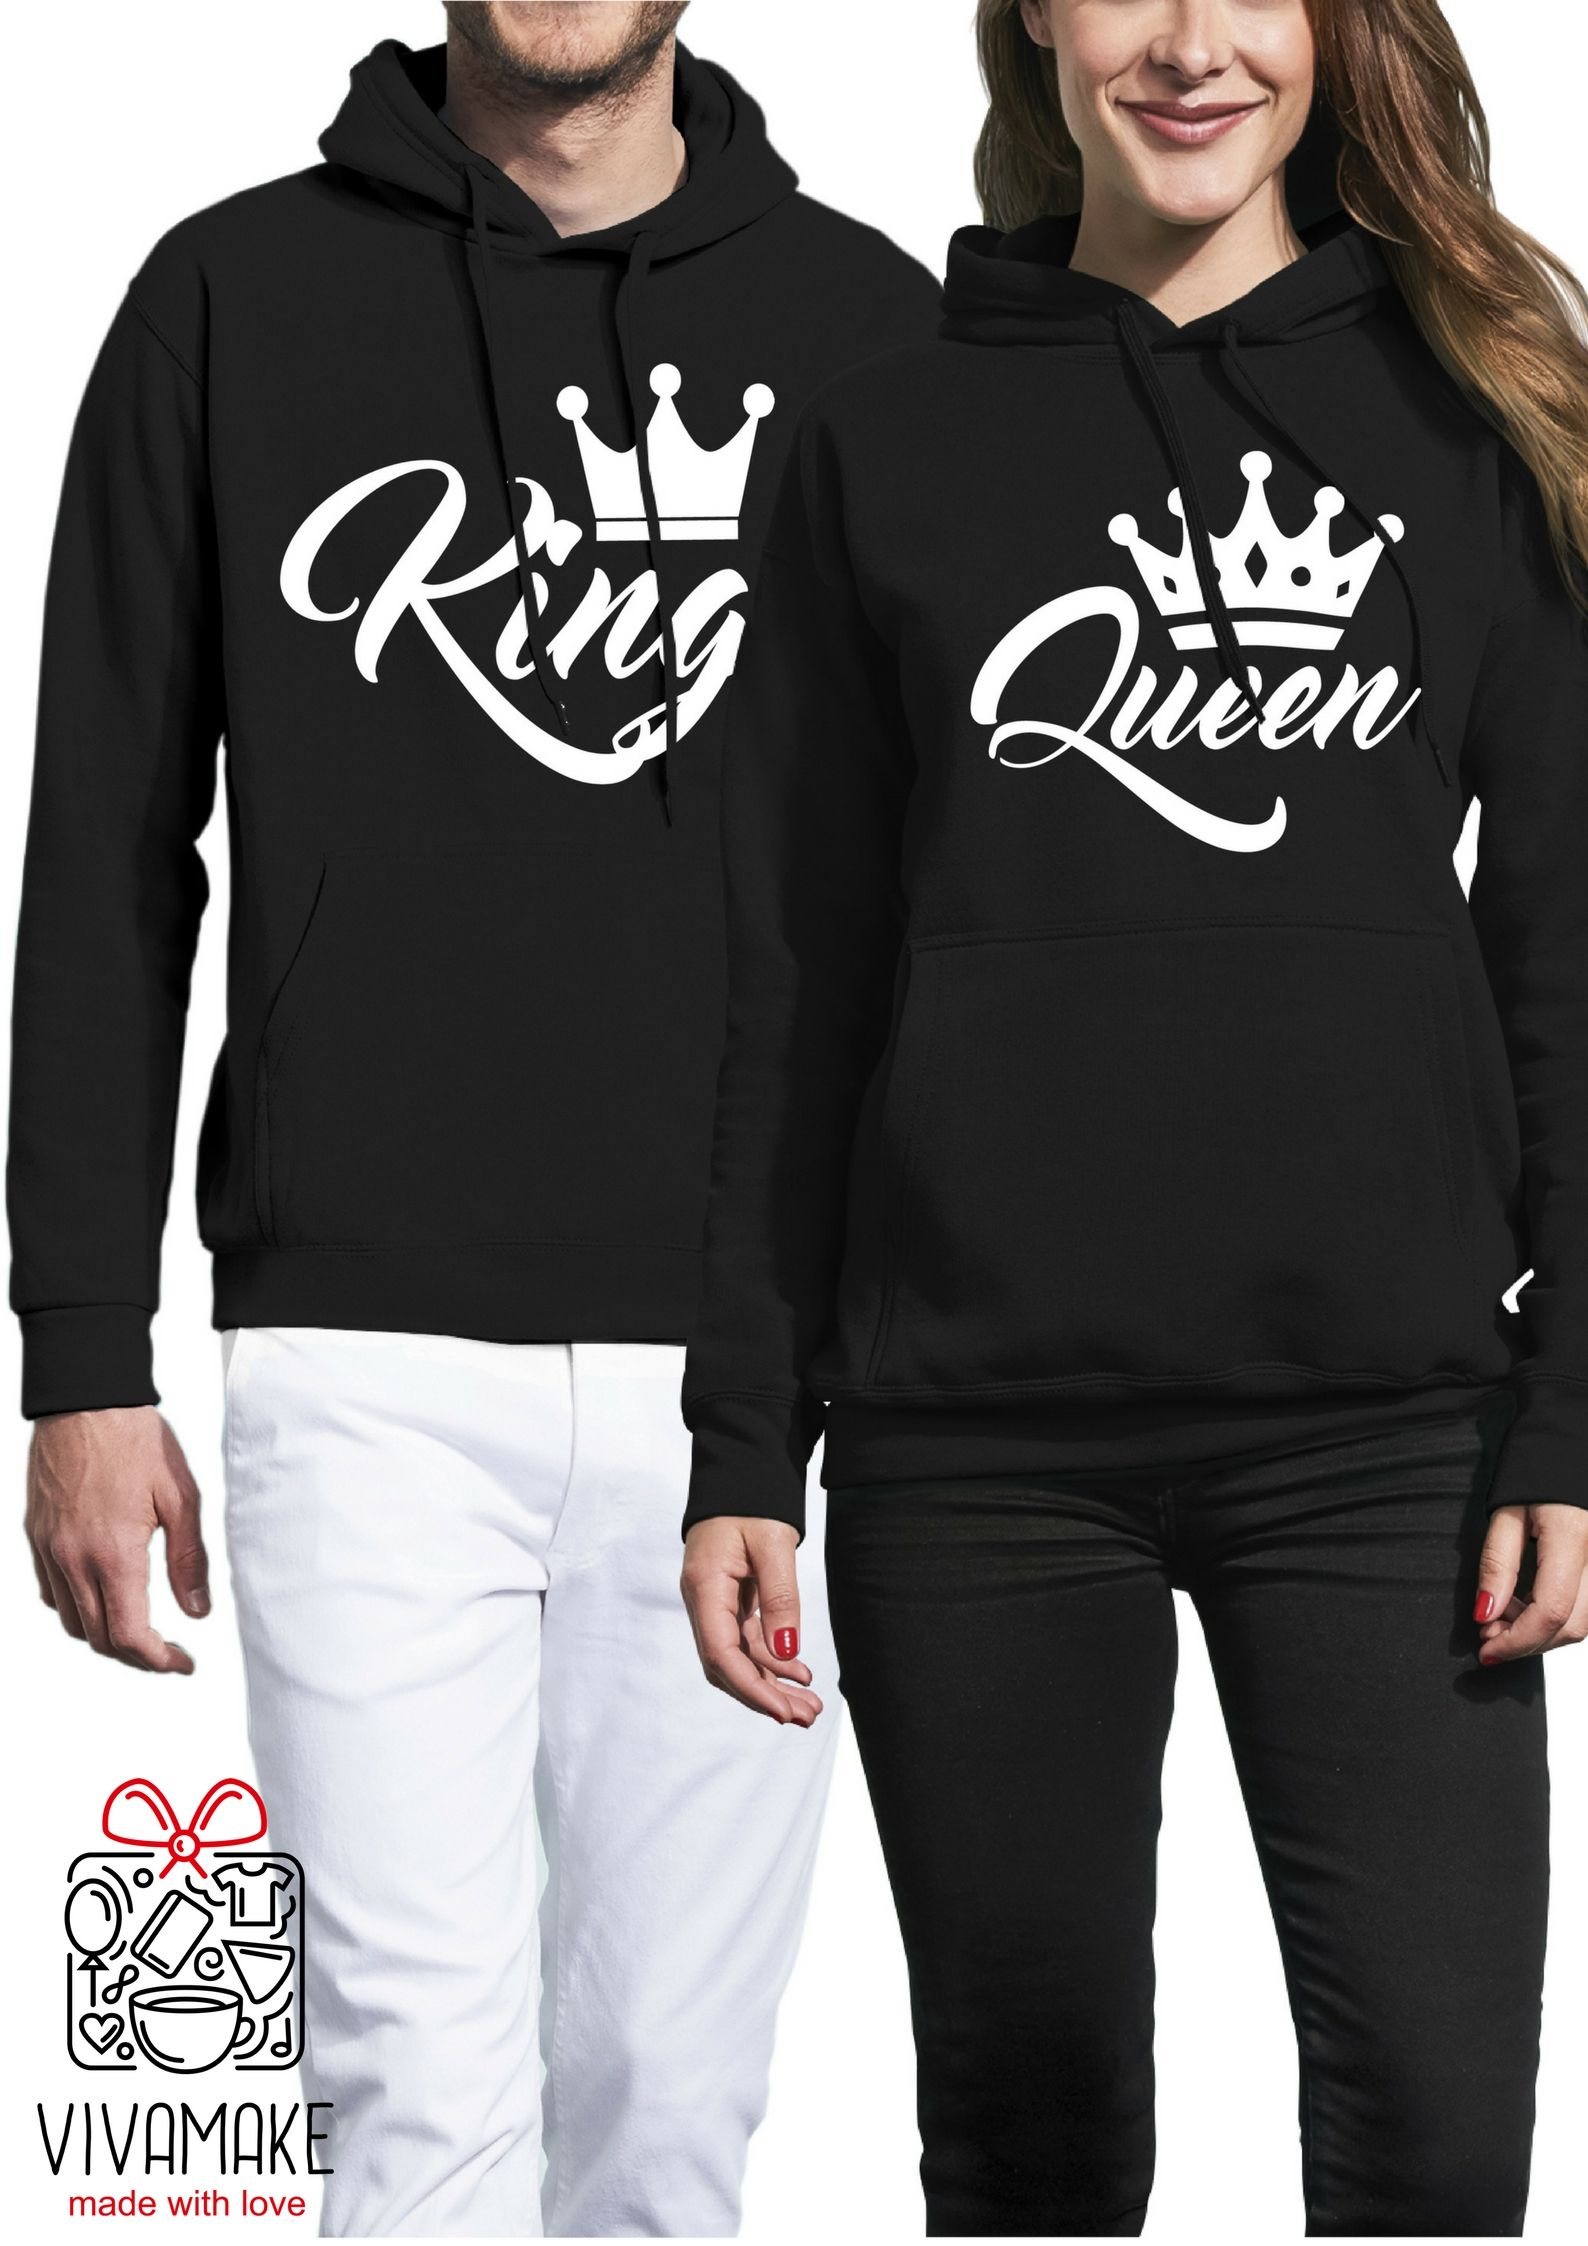 85a81c9a king and queen hoodies / king and queen sweatshirts / king queen hoodies / king  queen shirts / king and queen sweatshirts / couple hoodies